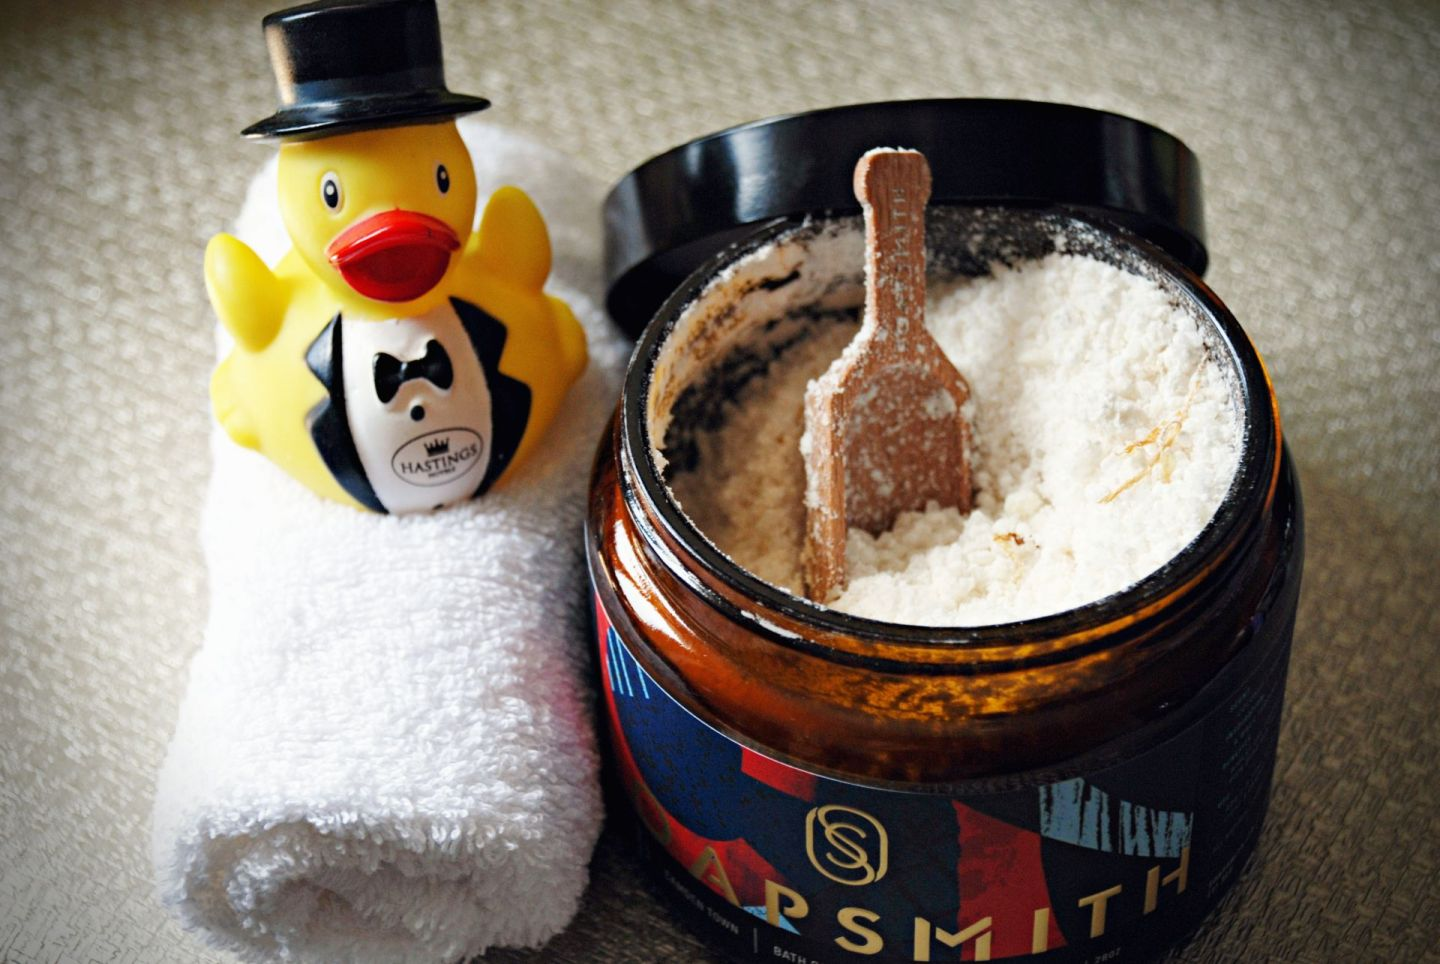 Jar of Soapsmith bath salts with rubber duck